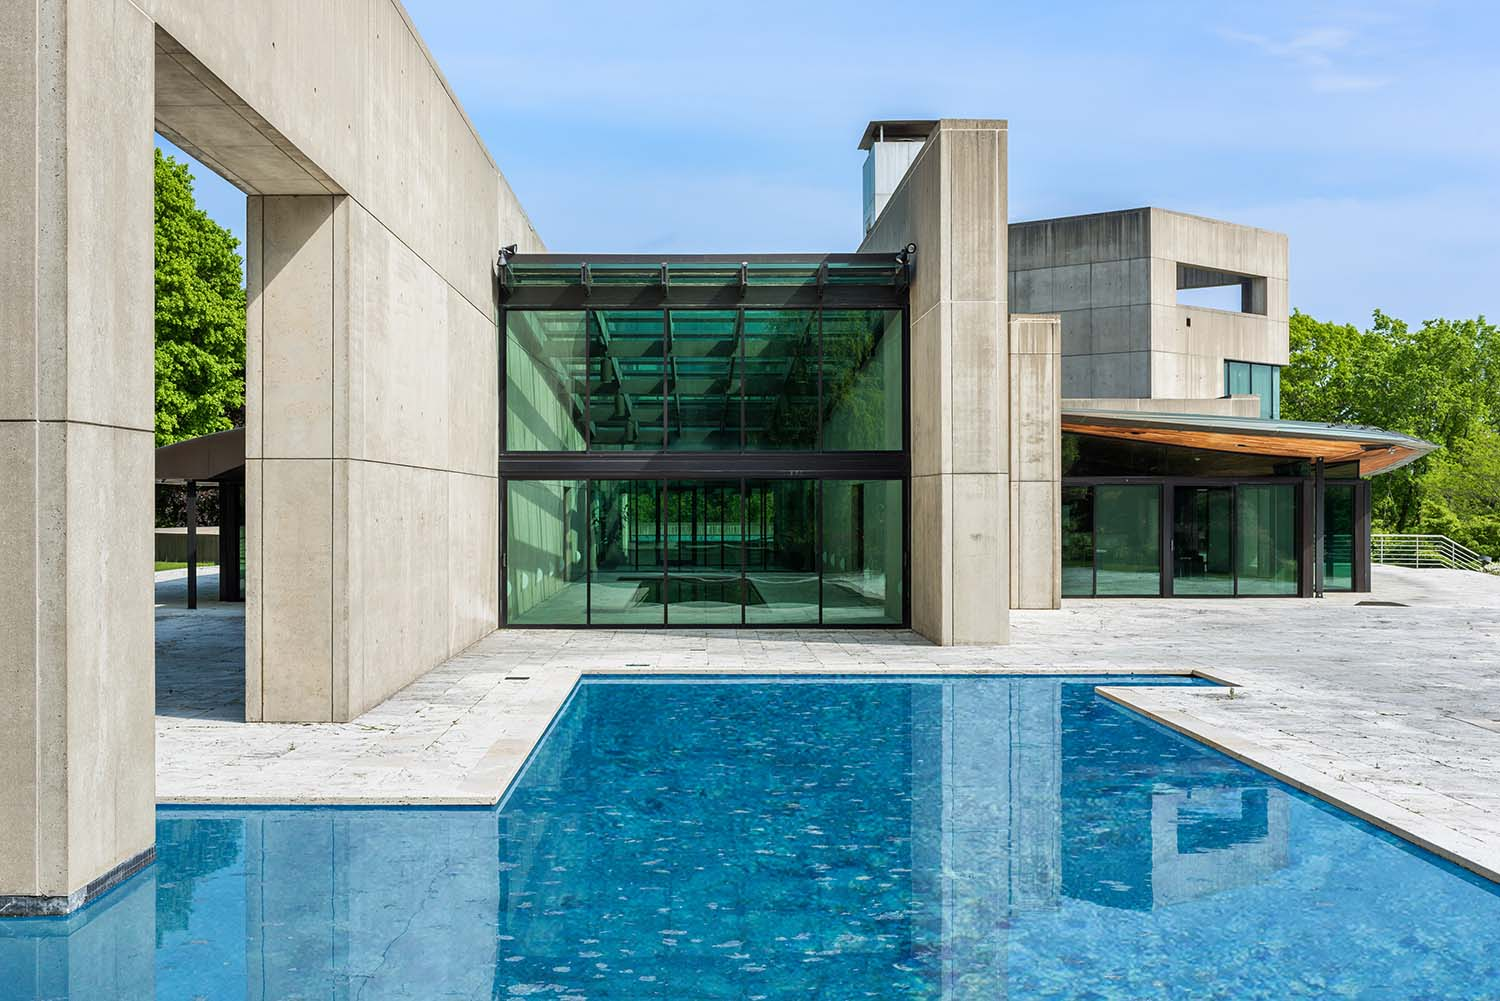 A house designed by Rafael Viñoly with stark concrete walls and a pool